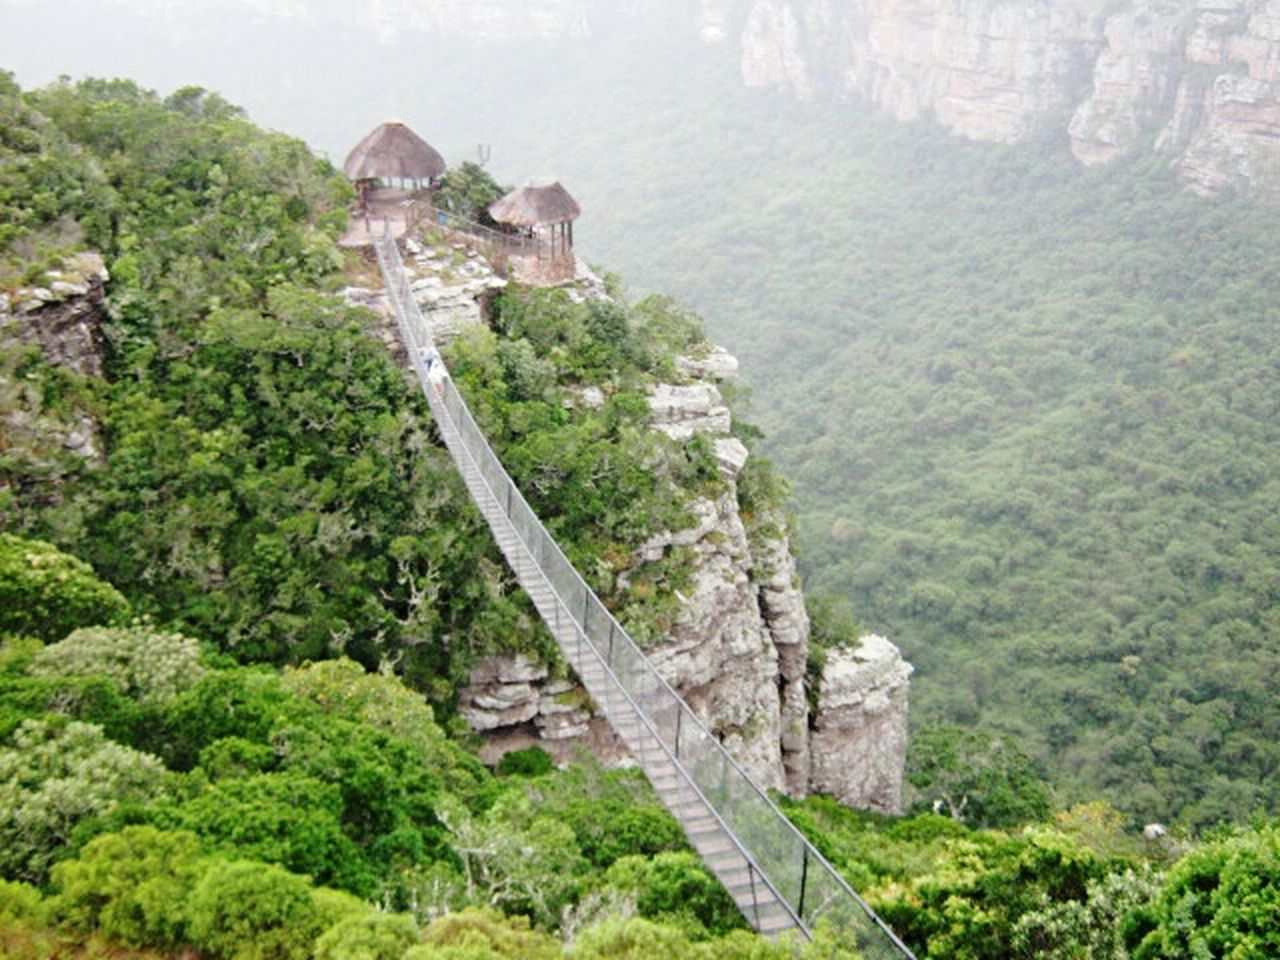 Photography Beauty In Nature Oribi Georg Nature Reserve Scenic View Oribi Gorge South Africa Nature Travel Destinations Green Color Bridge The Great Outdoors - 2017 EyeEm Awards